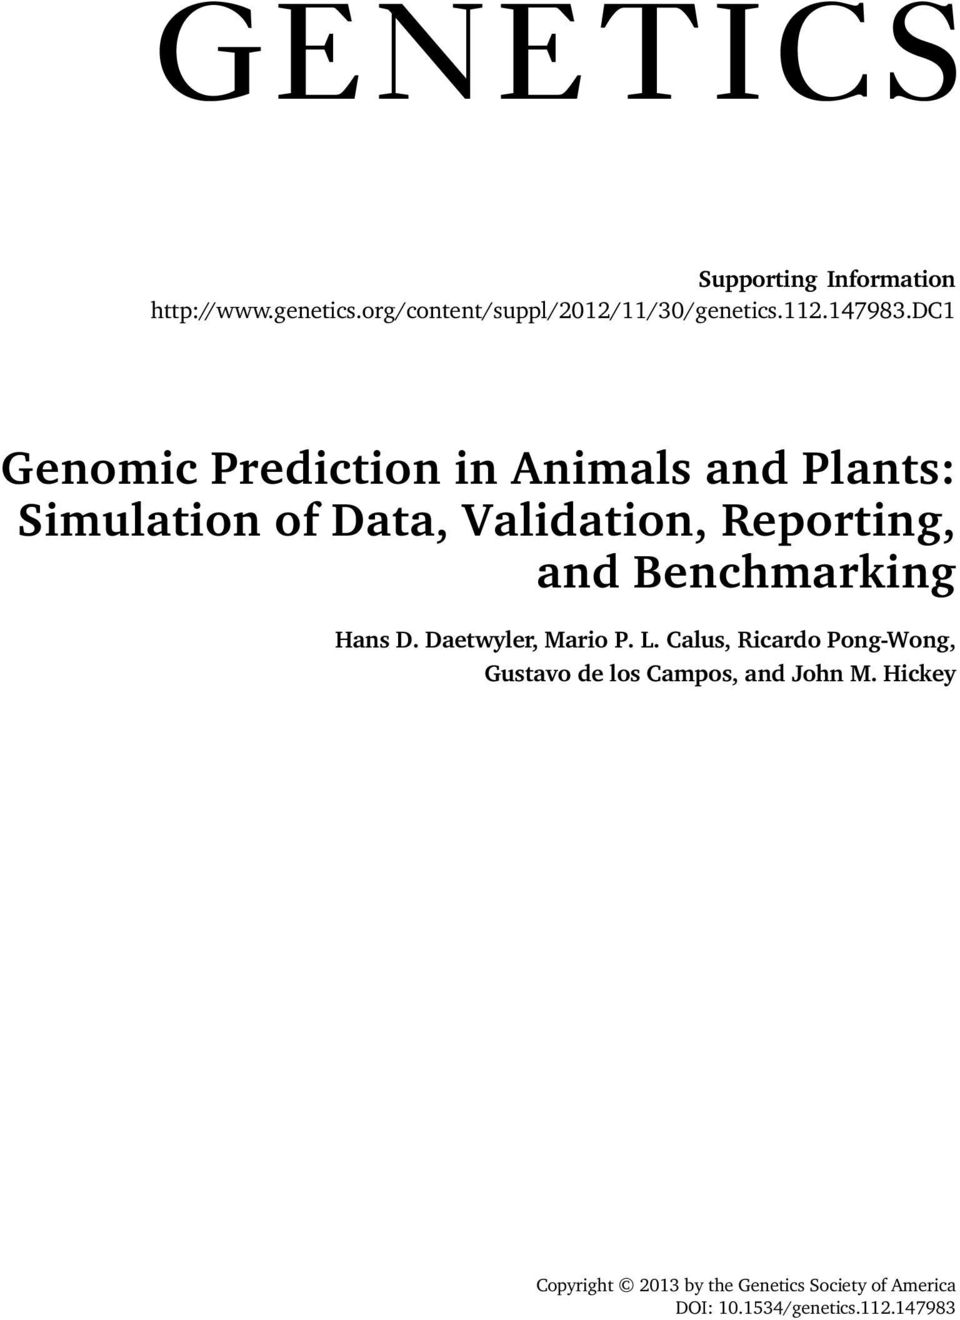 GENOMIC information is transforming animal and plant - PDF